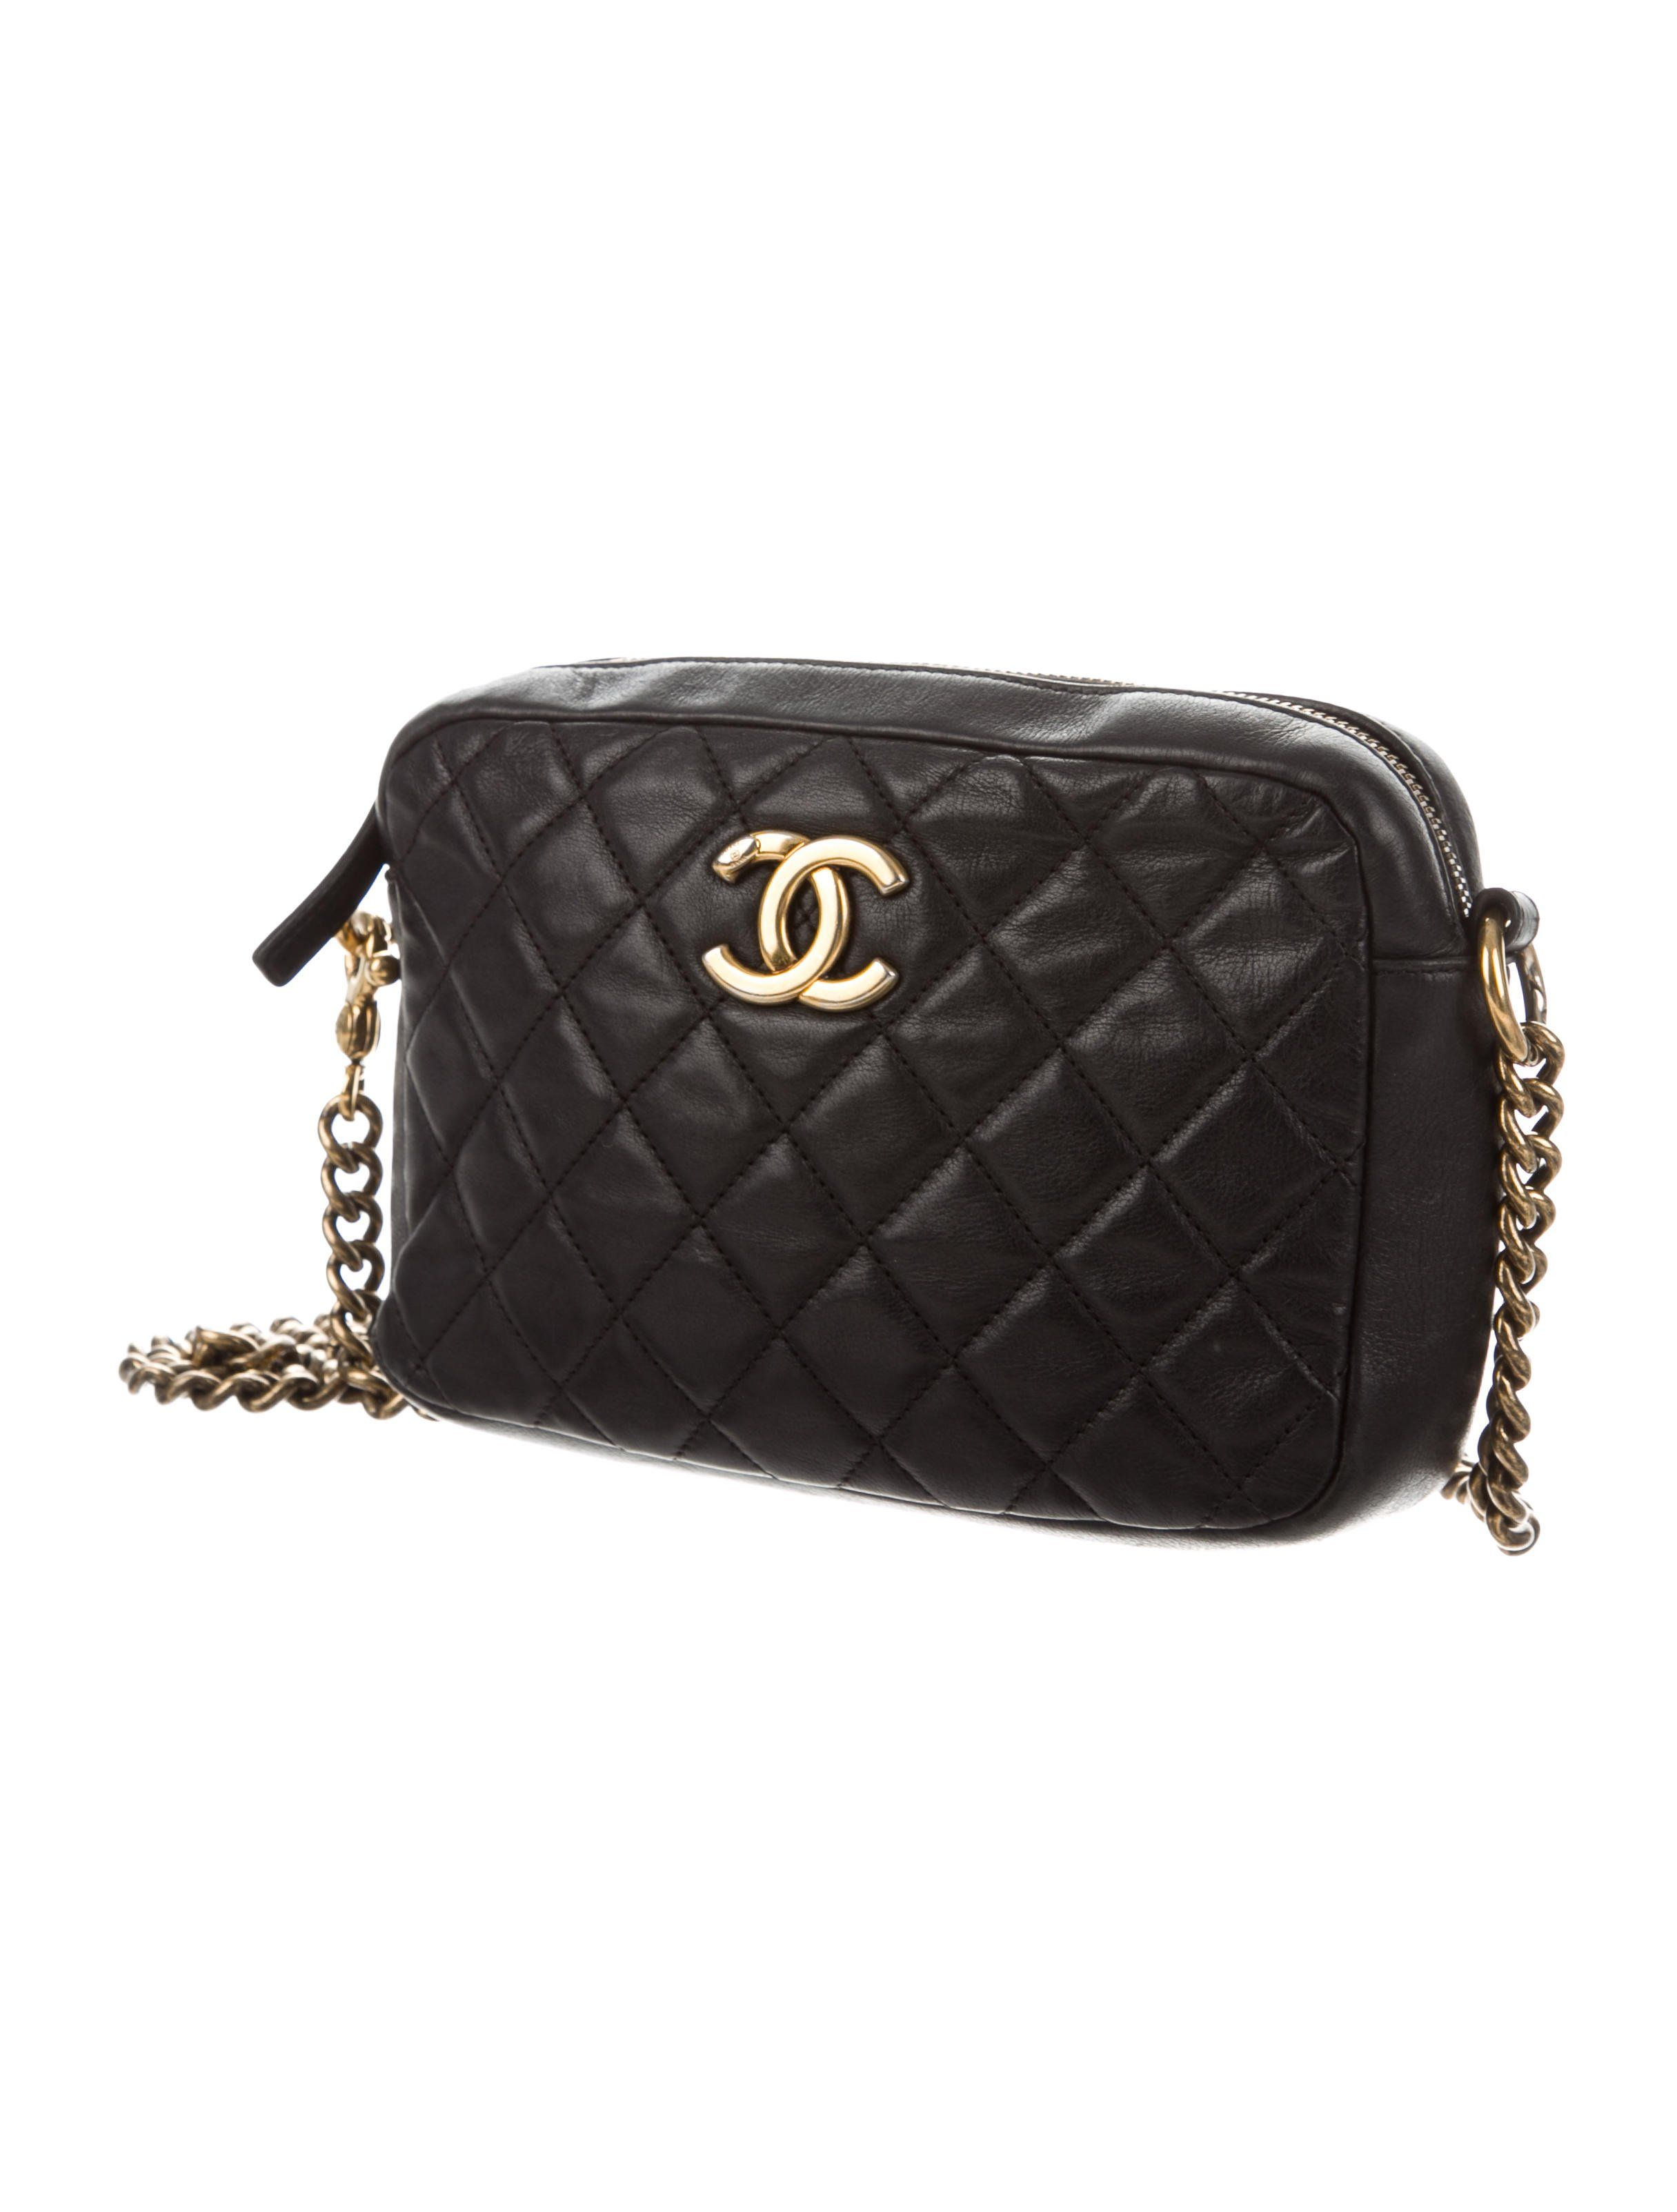 a32411c7ec1811 Black quilted lambskin Chanel CC Crown Camera Bag with gold-tone hardware,  tonal stitching, logo at exterior, single chain-link and leather shoulder  strap,